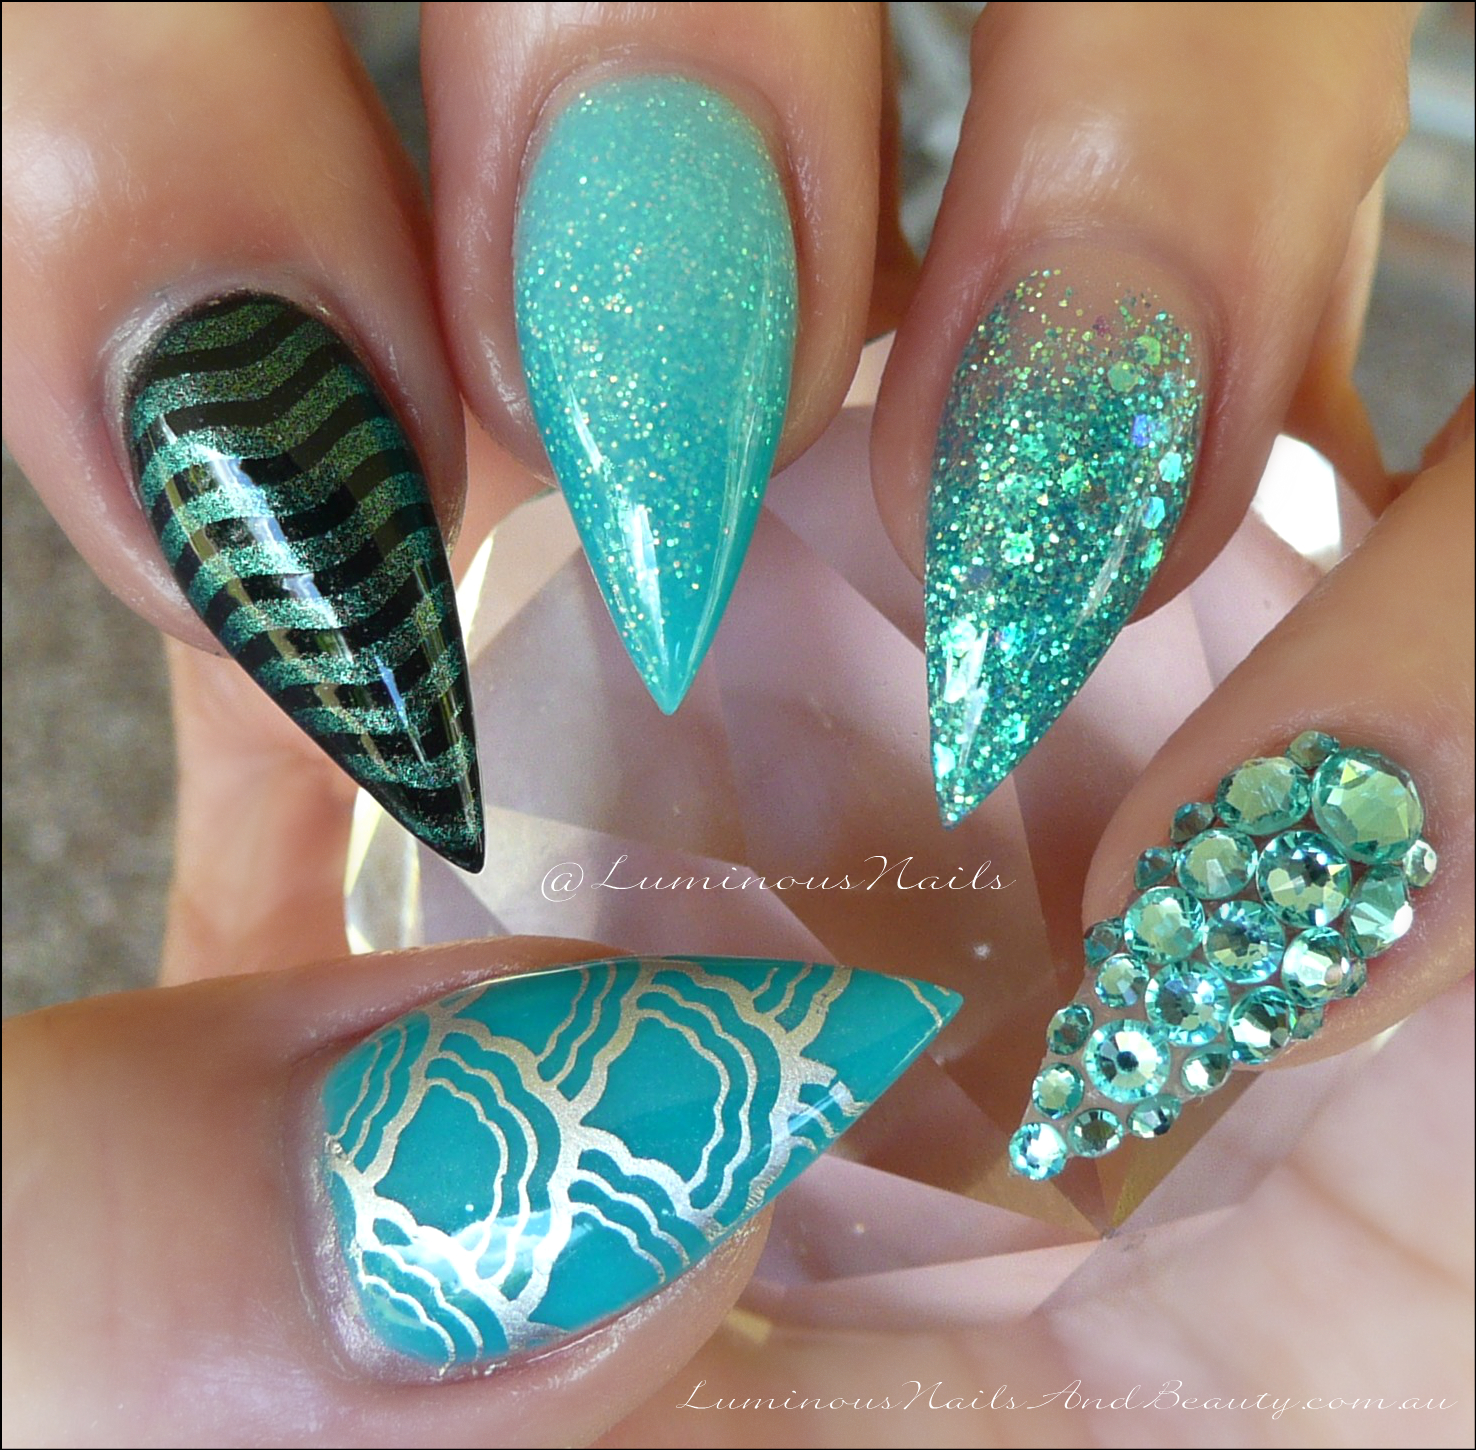 Luminous Nails: Turquoise & Teal, Inspired by the Beach..Acrylic Nails